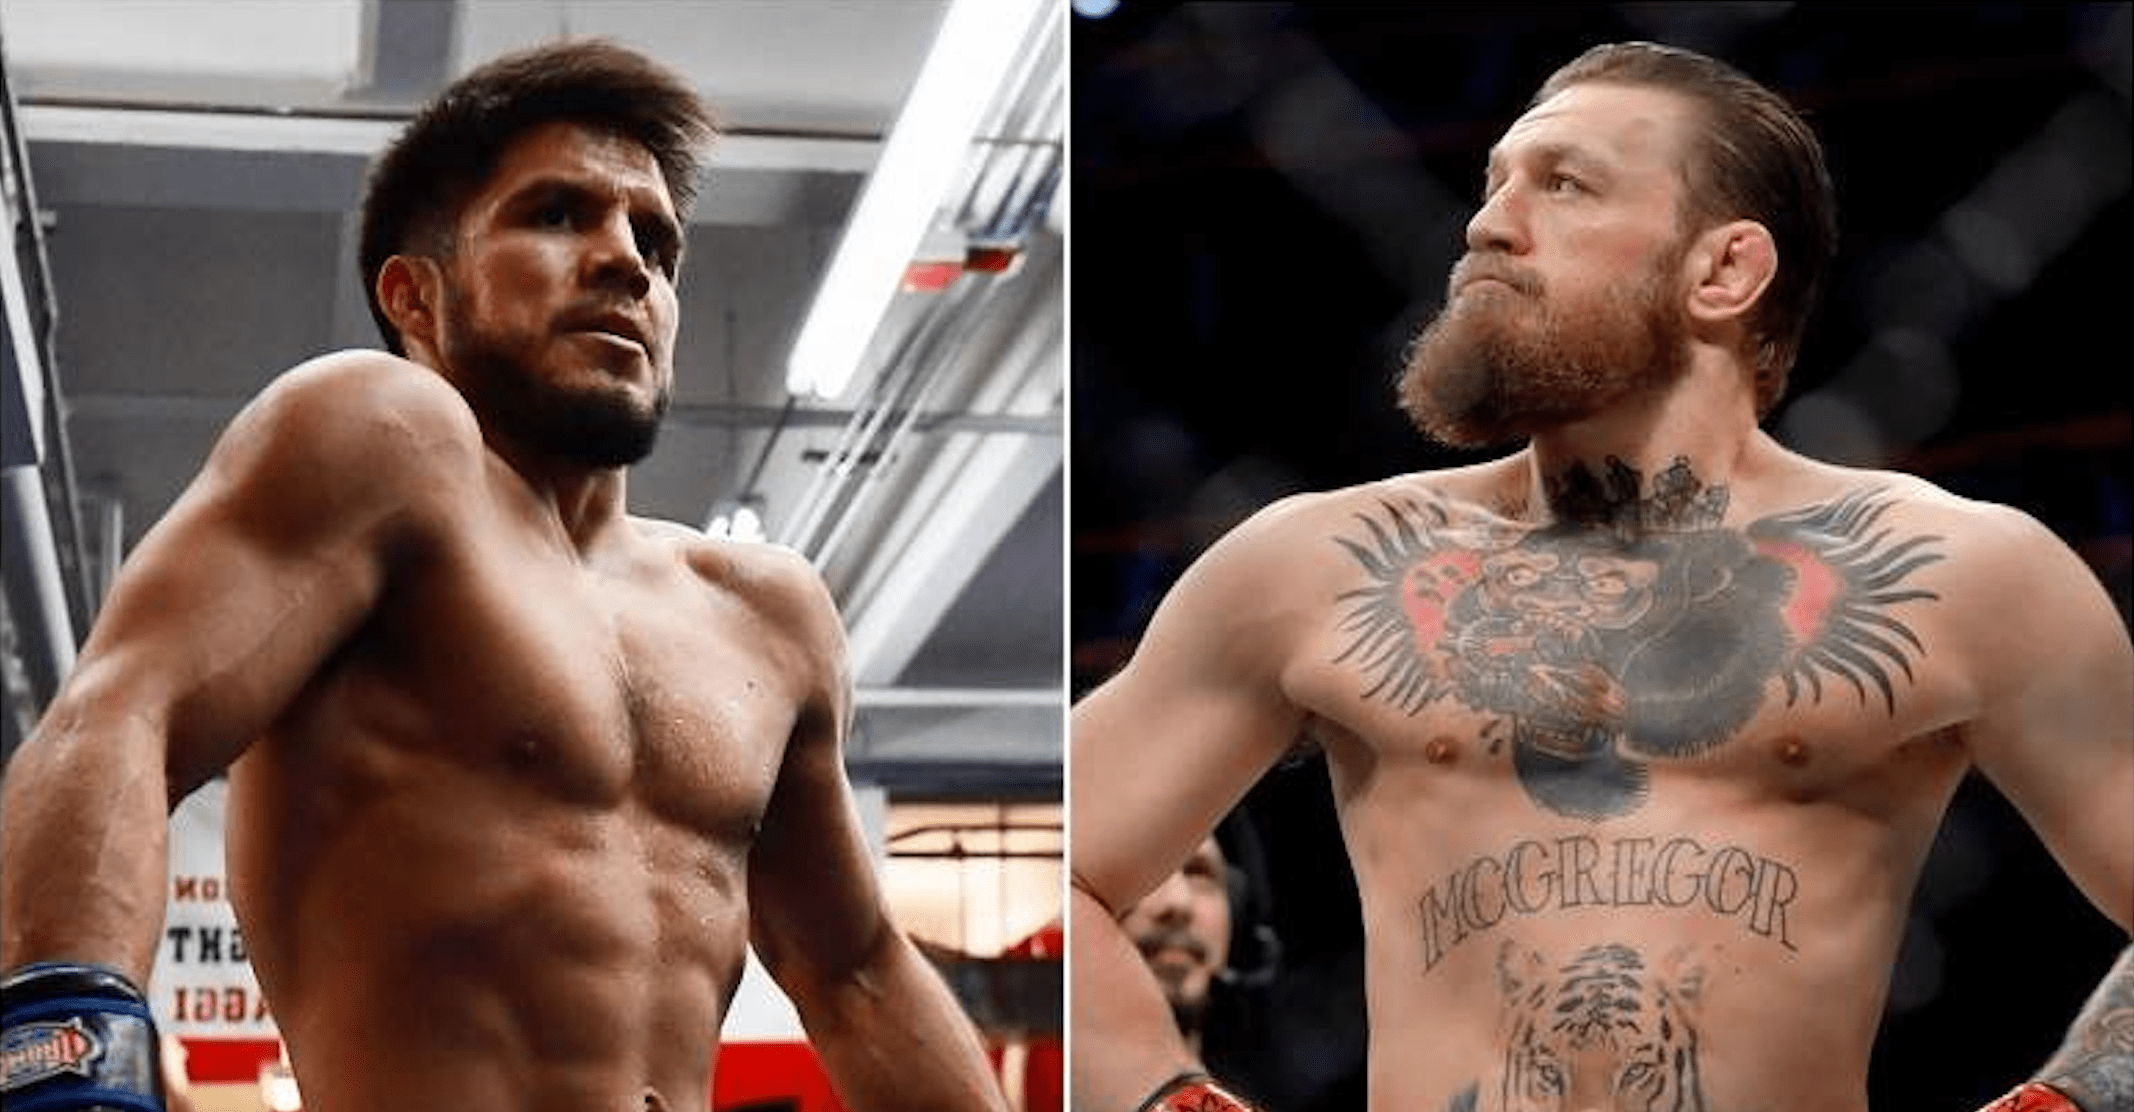 UFC Henry Cejudo and Conor McGregor